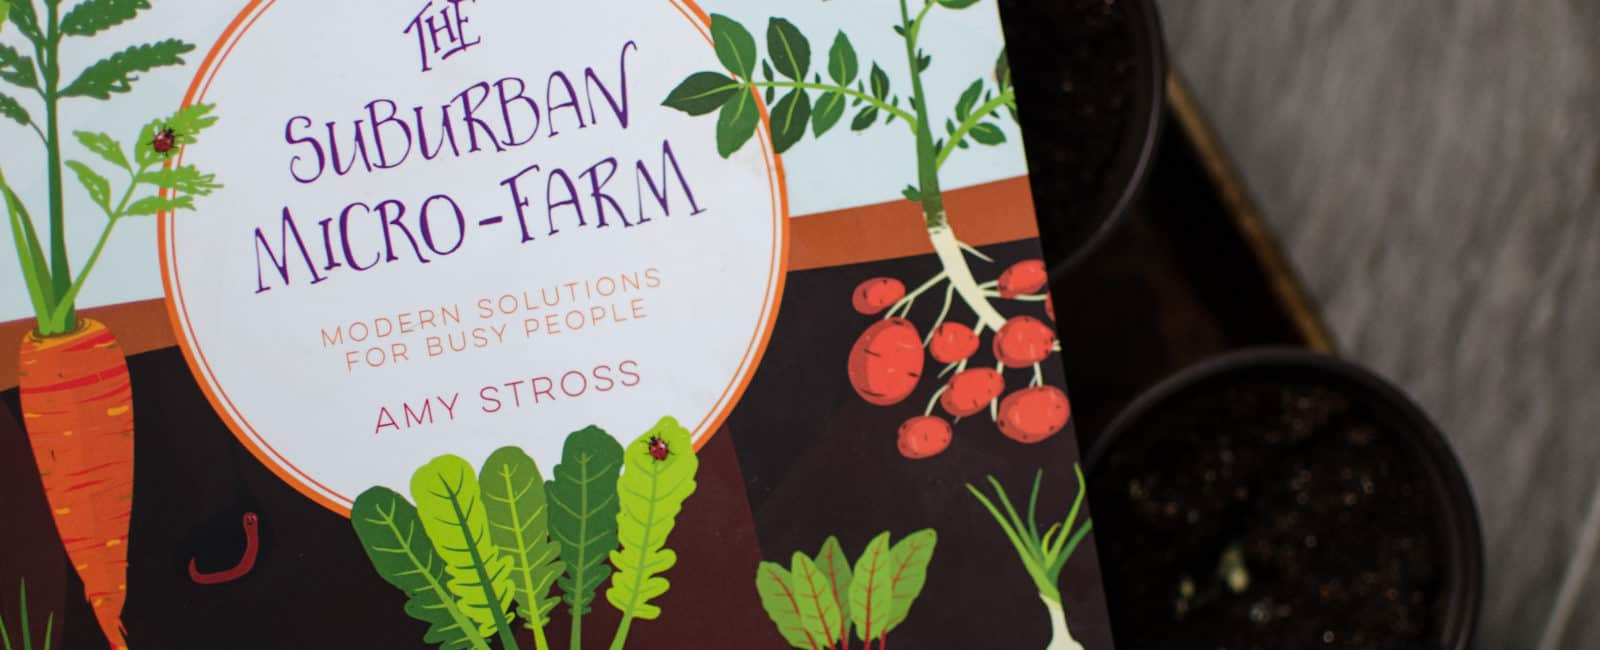 Book Review | The Suburban Micro-Farm by Amy Stross